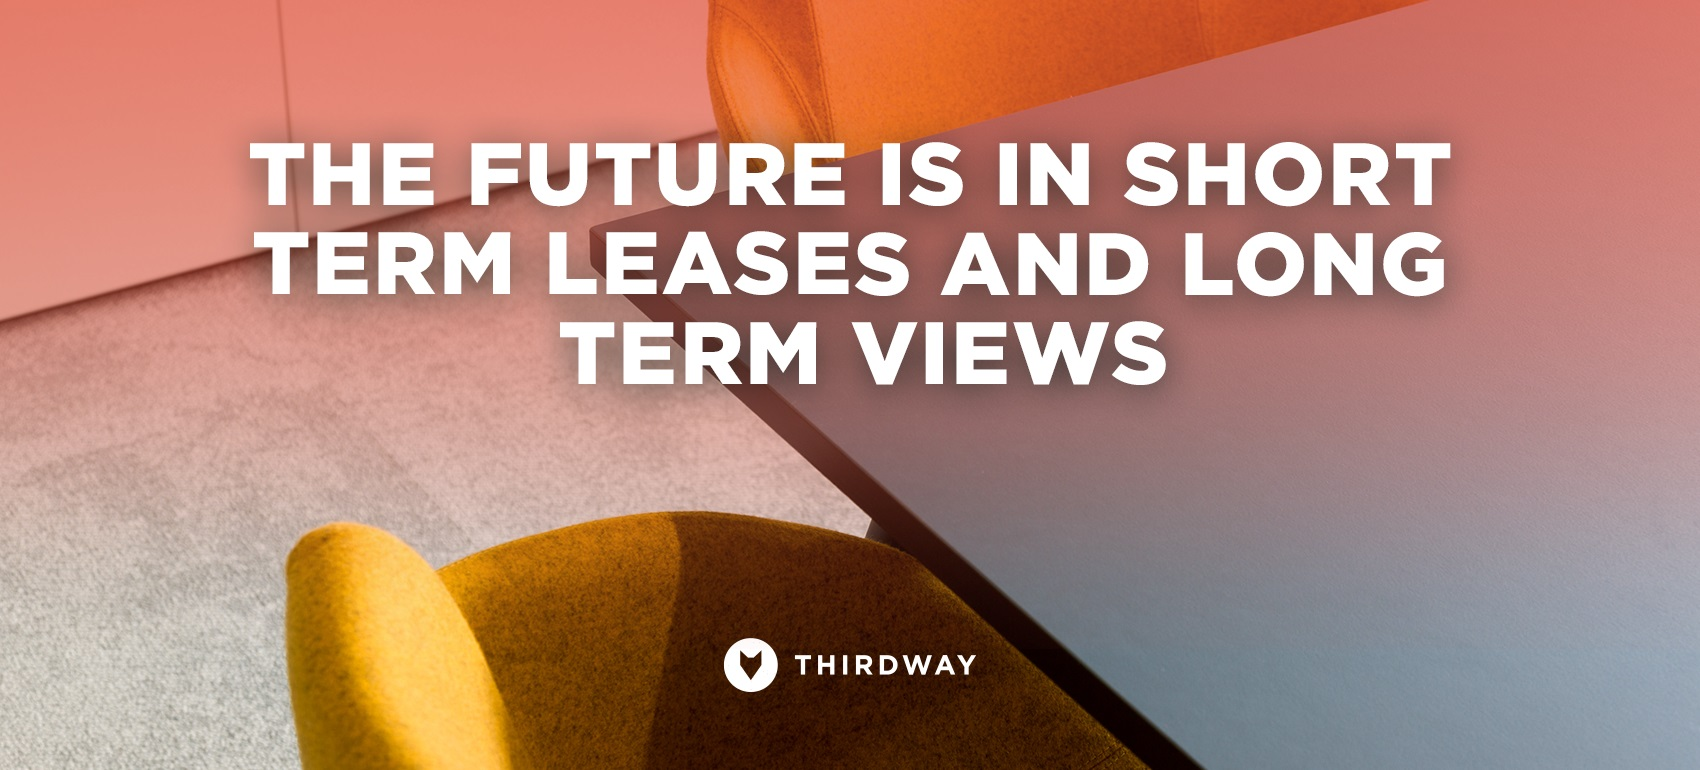 The future is in short term leases and long term views